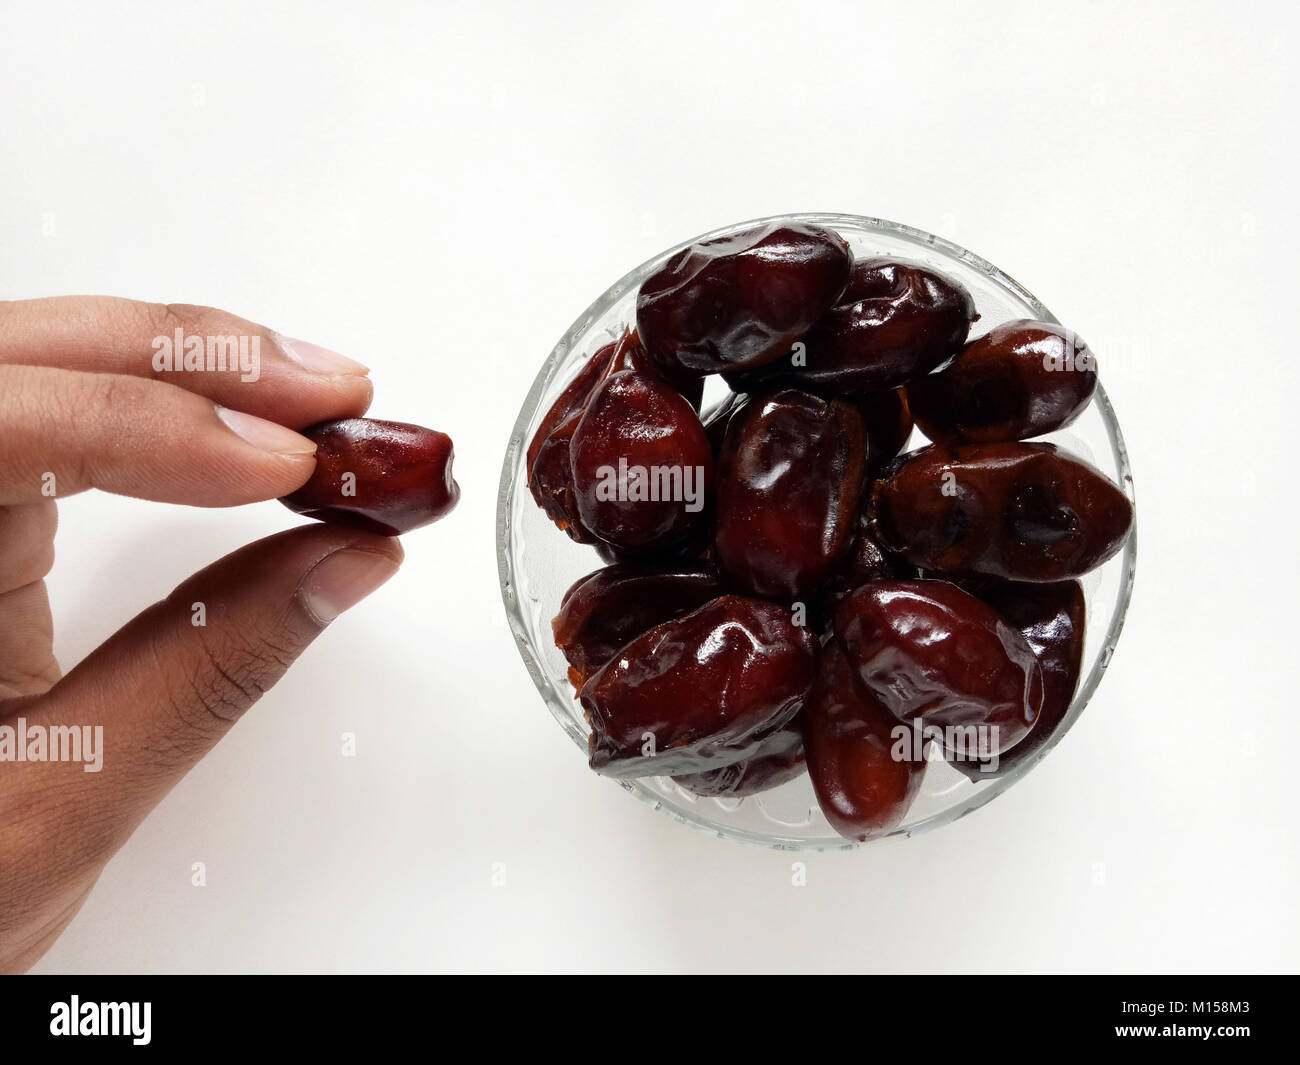 Hand Picked up a Date Fruit - Stock Image